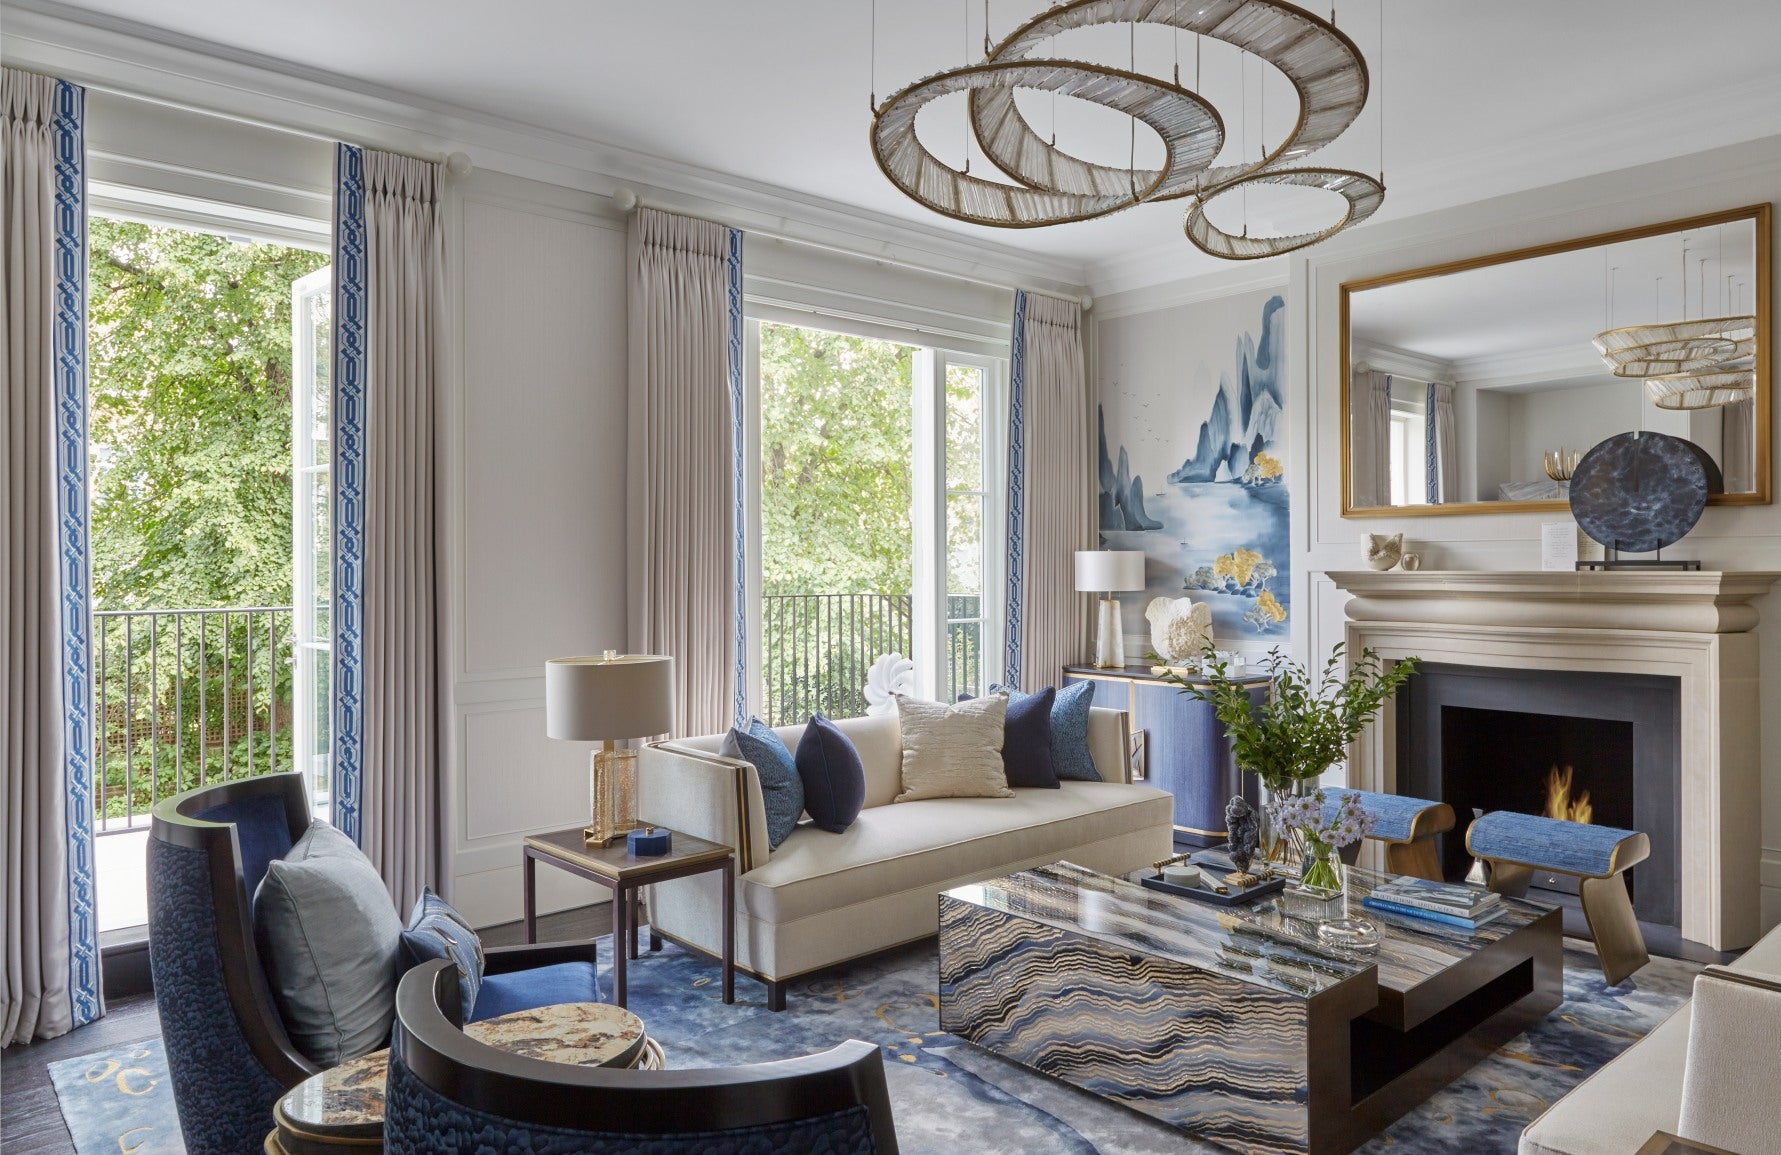 Katharine Pooley | London Interior Designer | Blue Living Room | Read more in The Luxurist at LuxDeco.com